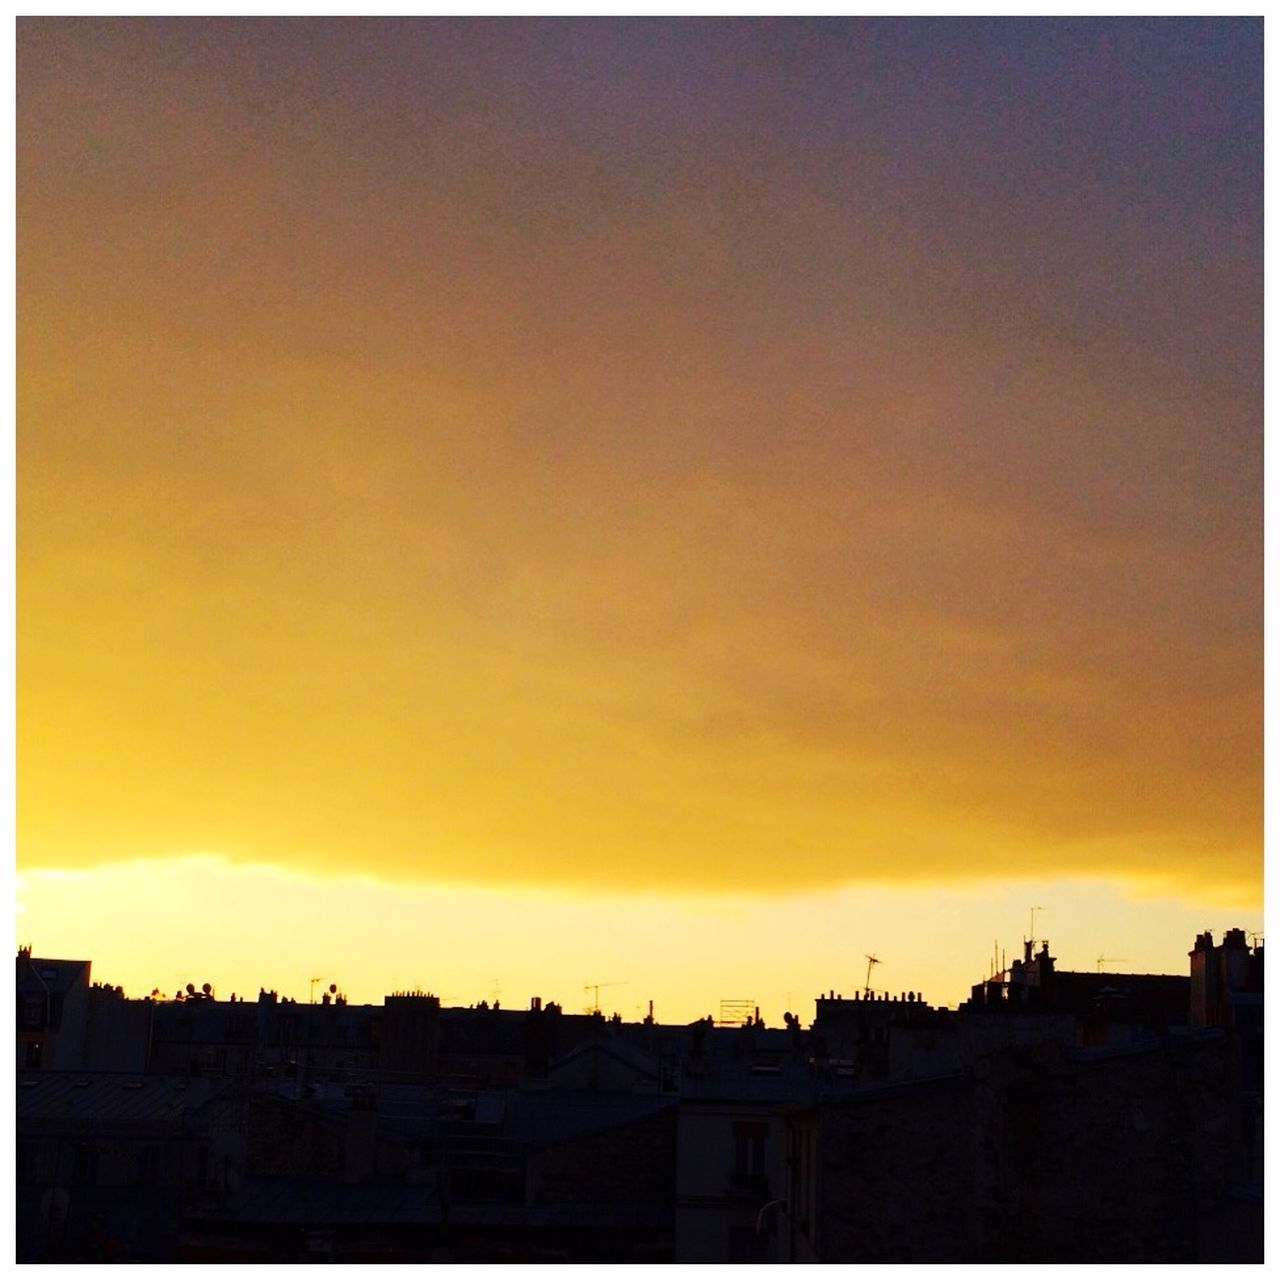 Paris Sunset End Of The Day Fullness Golden Hour Roofs Of Paris Contre-jour Roofs Goldenlight